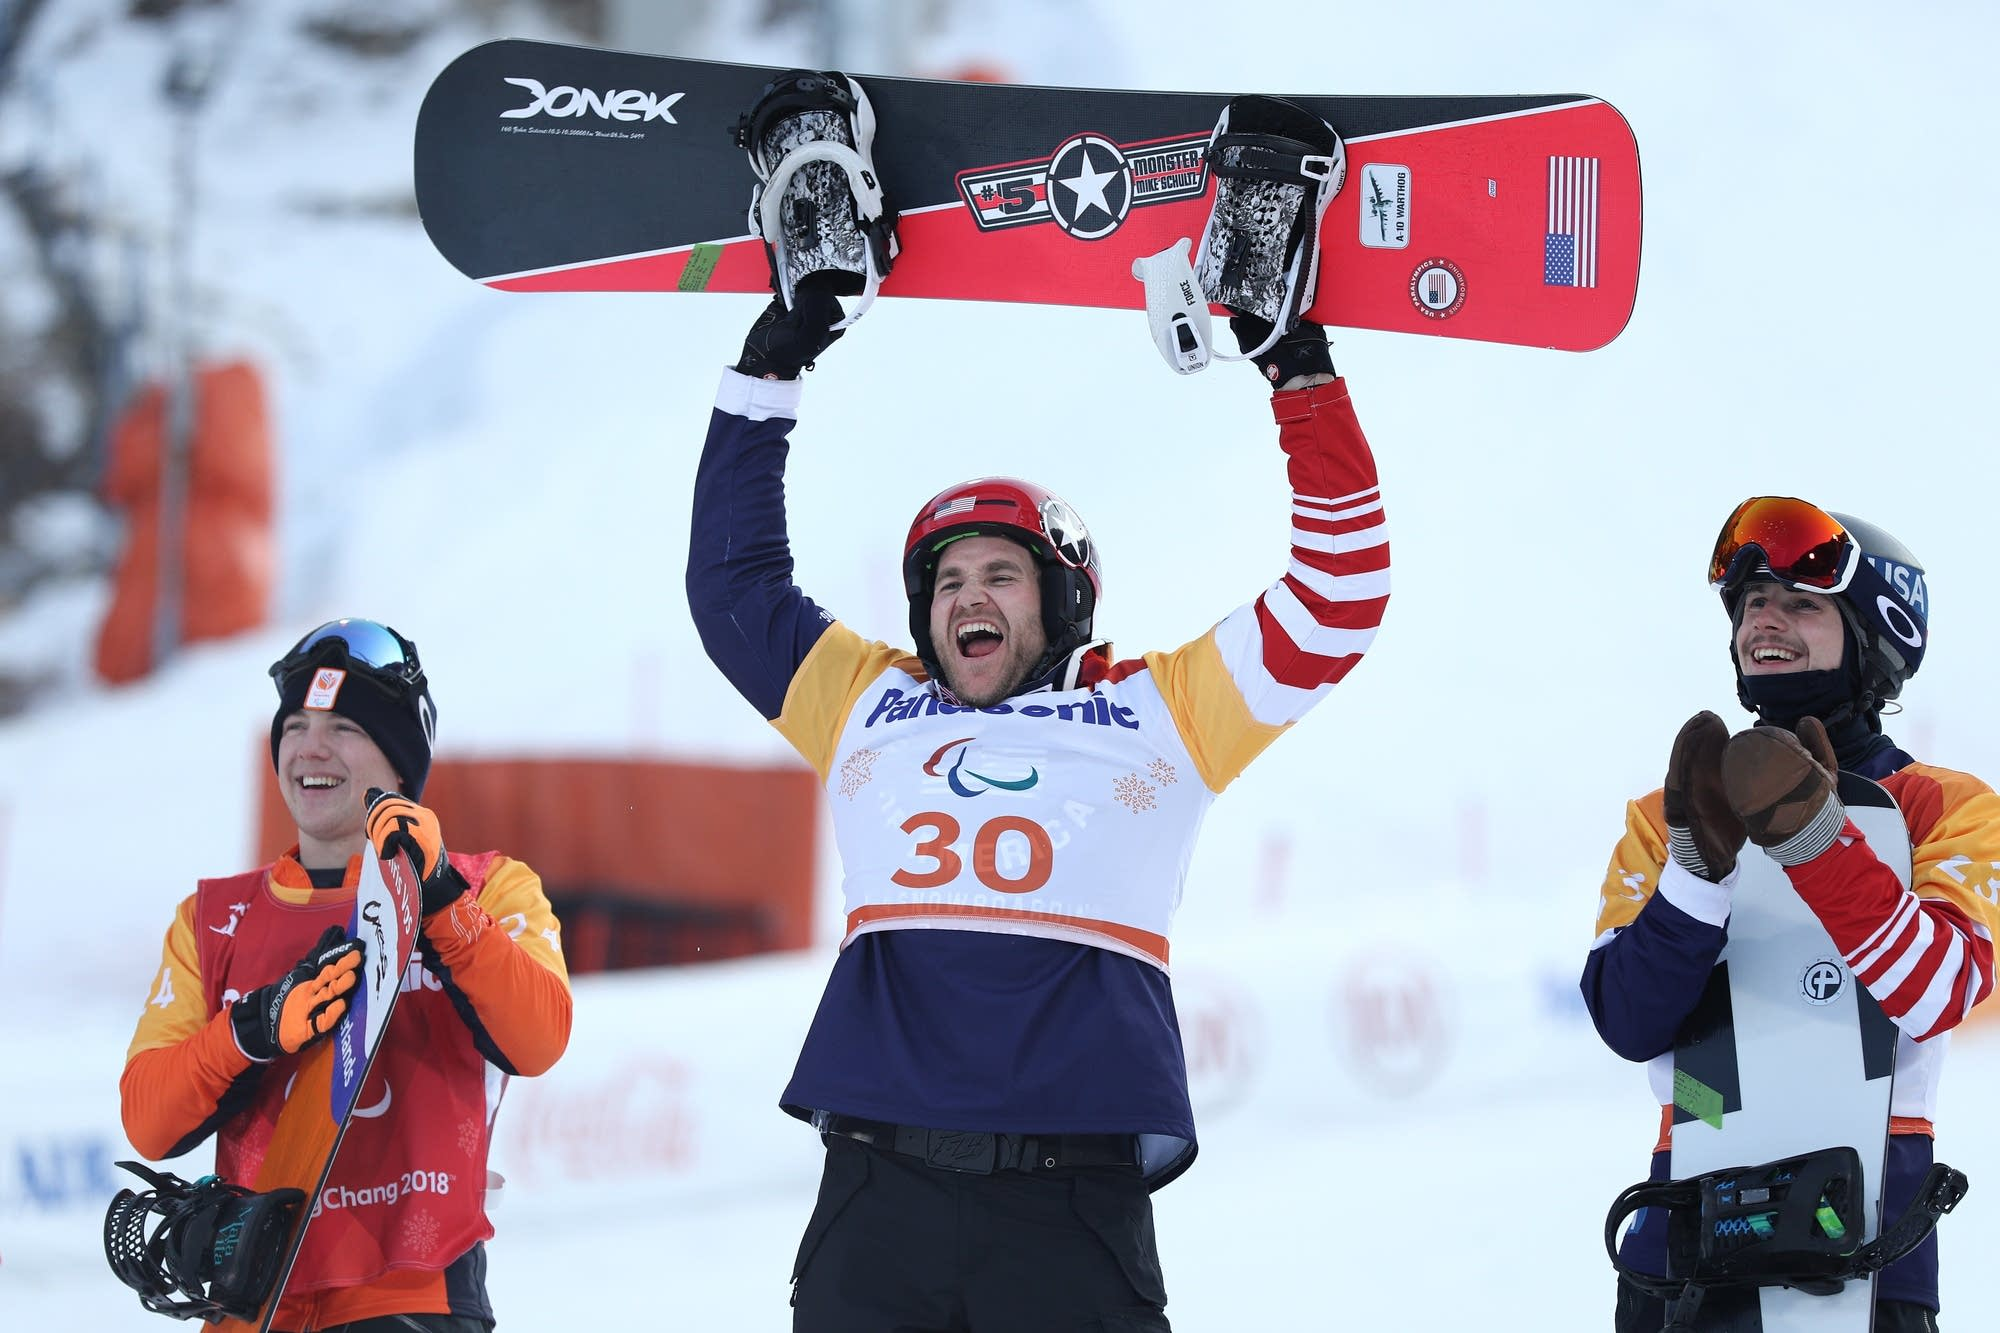 Mike Schultz of St. Cloud, Minn., celebrates after winning the gold medal.